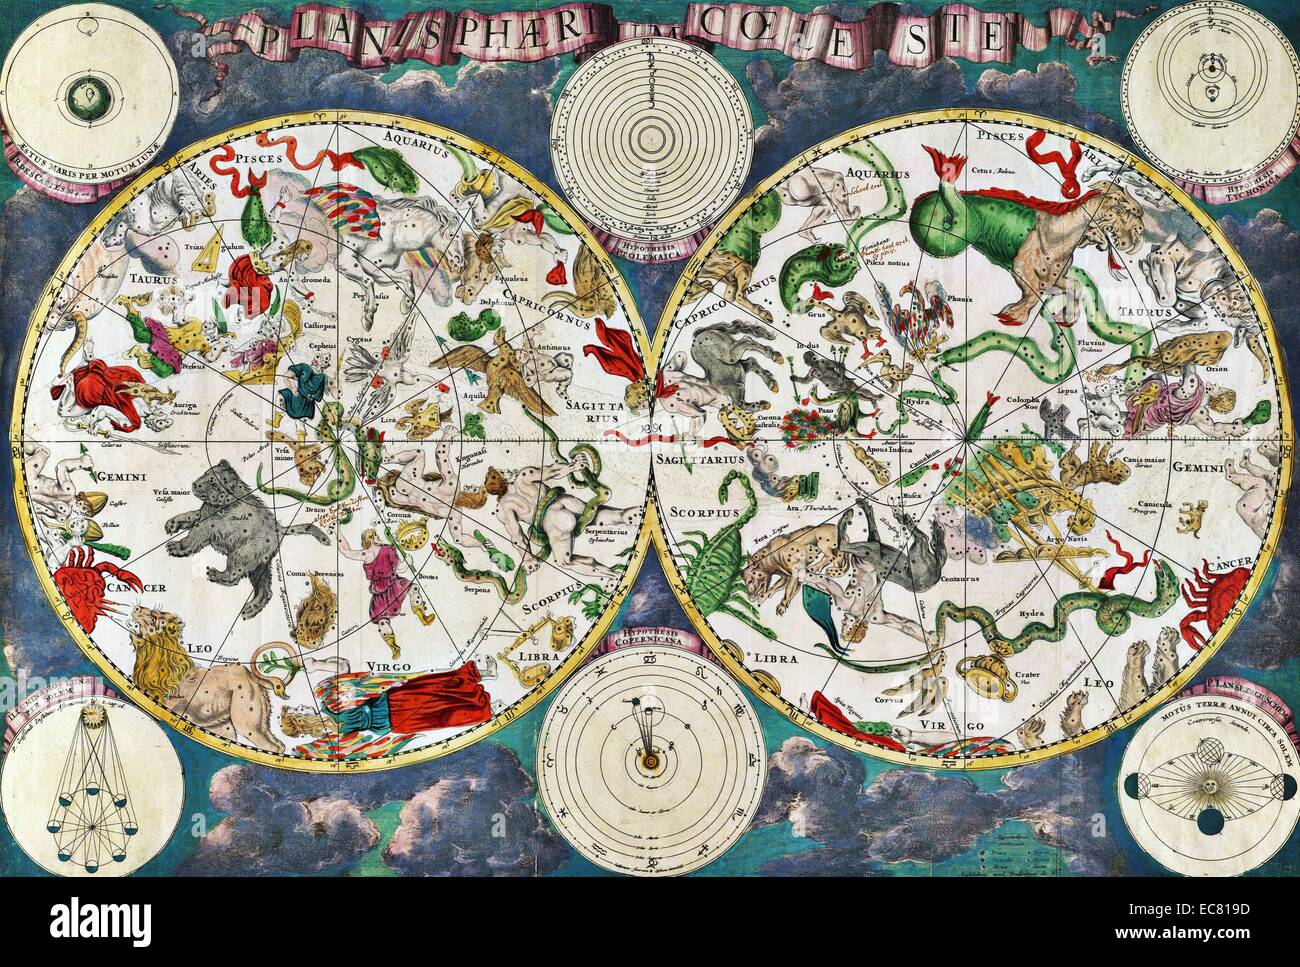 Map Of Zodiac Stock Photos & Map Of Zodiac Stock Images - Alamy Zodiac Map on capitals of the world map, ancient greek astronomy map, moon map, fire map, astrology chart map, azimuth map, cat map, complete astrology map, earth map, world war z map, everest map, monkey map, constellation map, flags of the world map, skagen map, story map, zombie map, astrological sign map, scorpius map, titanic map,